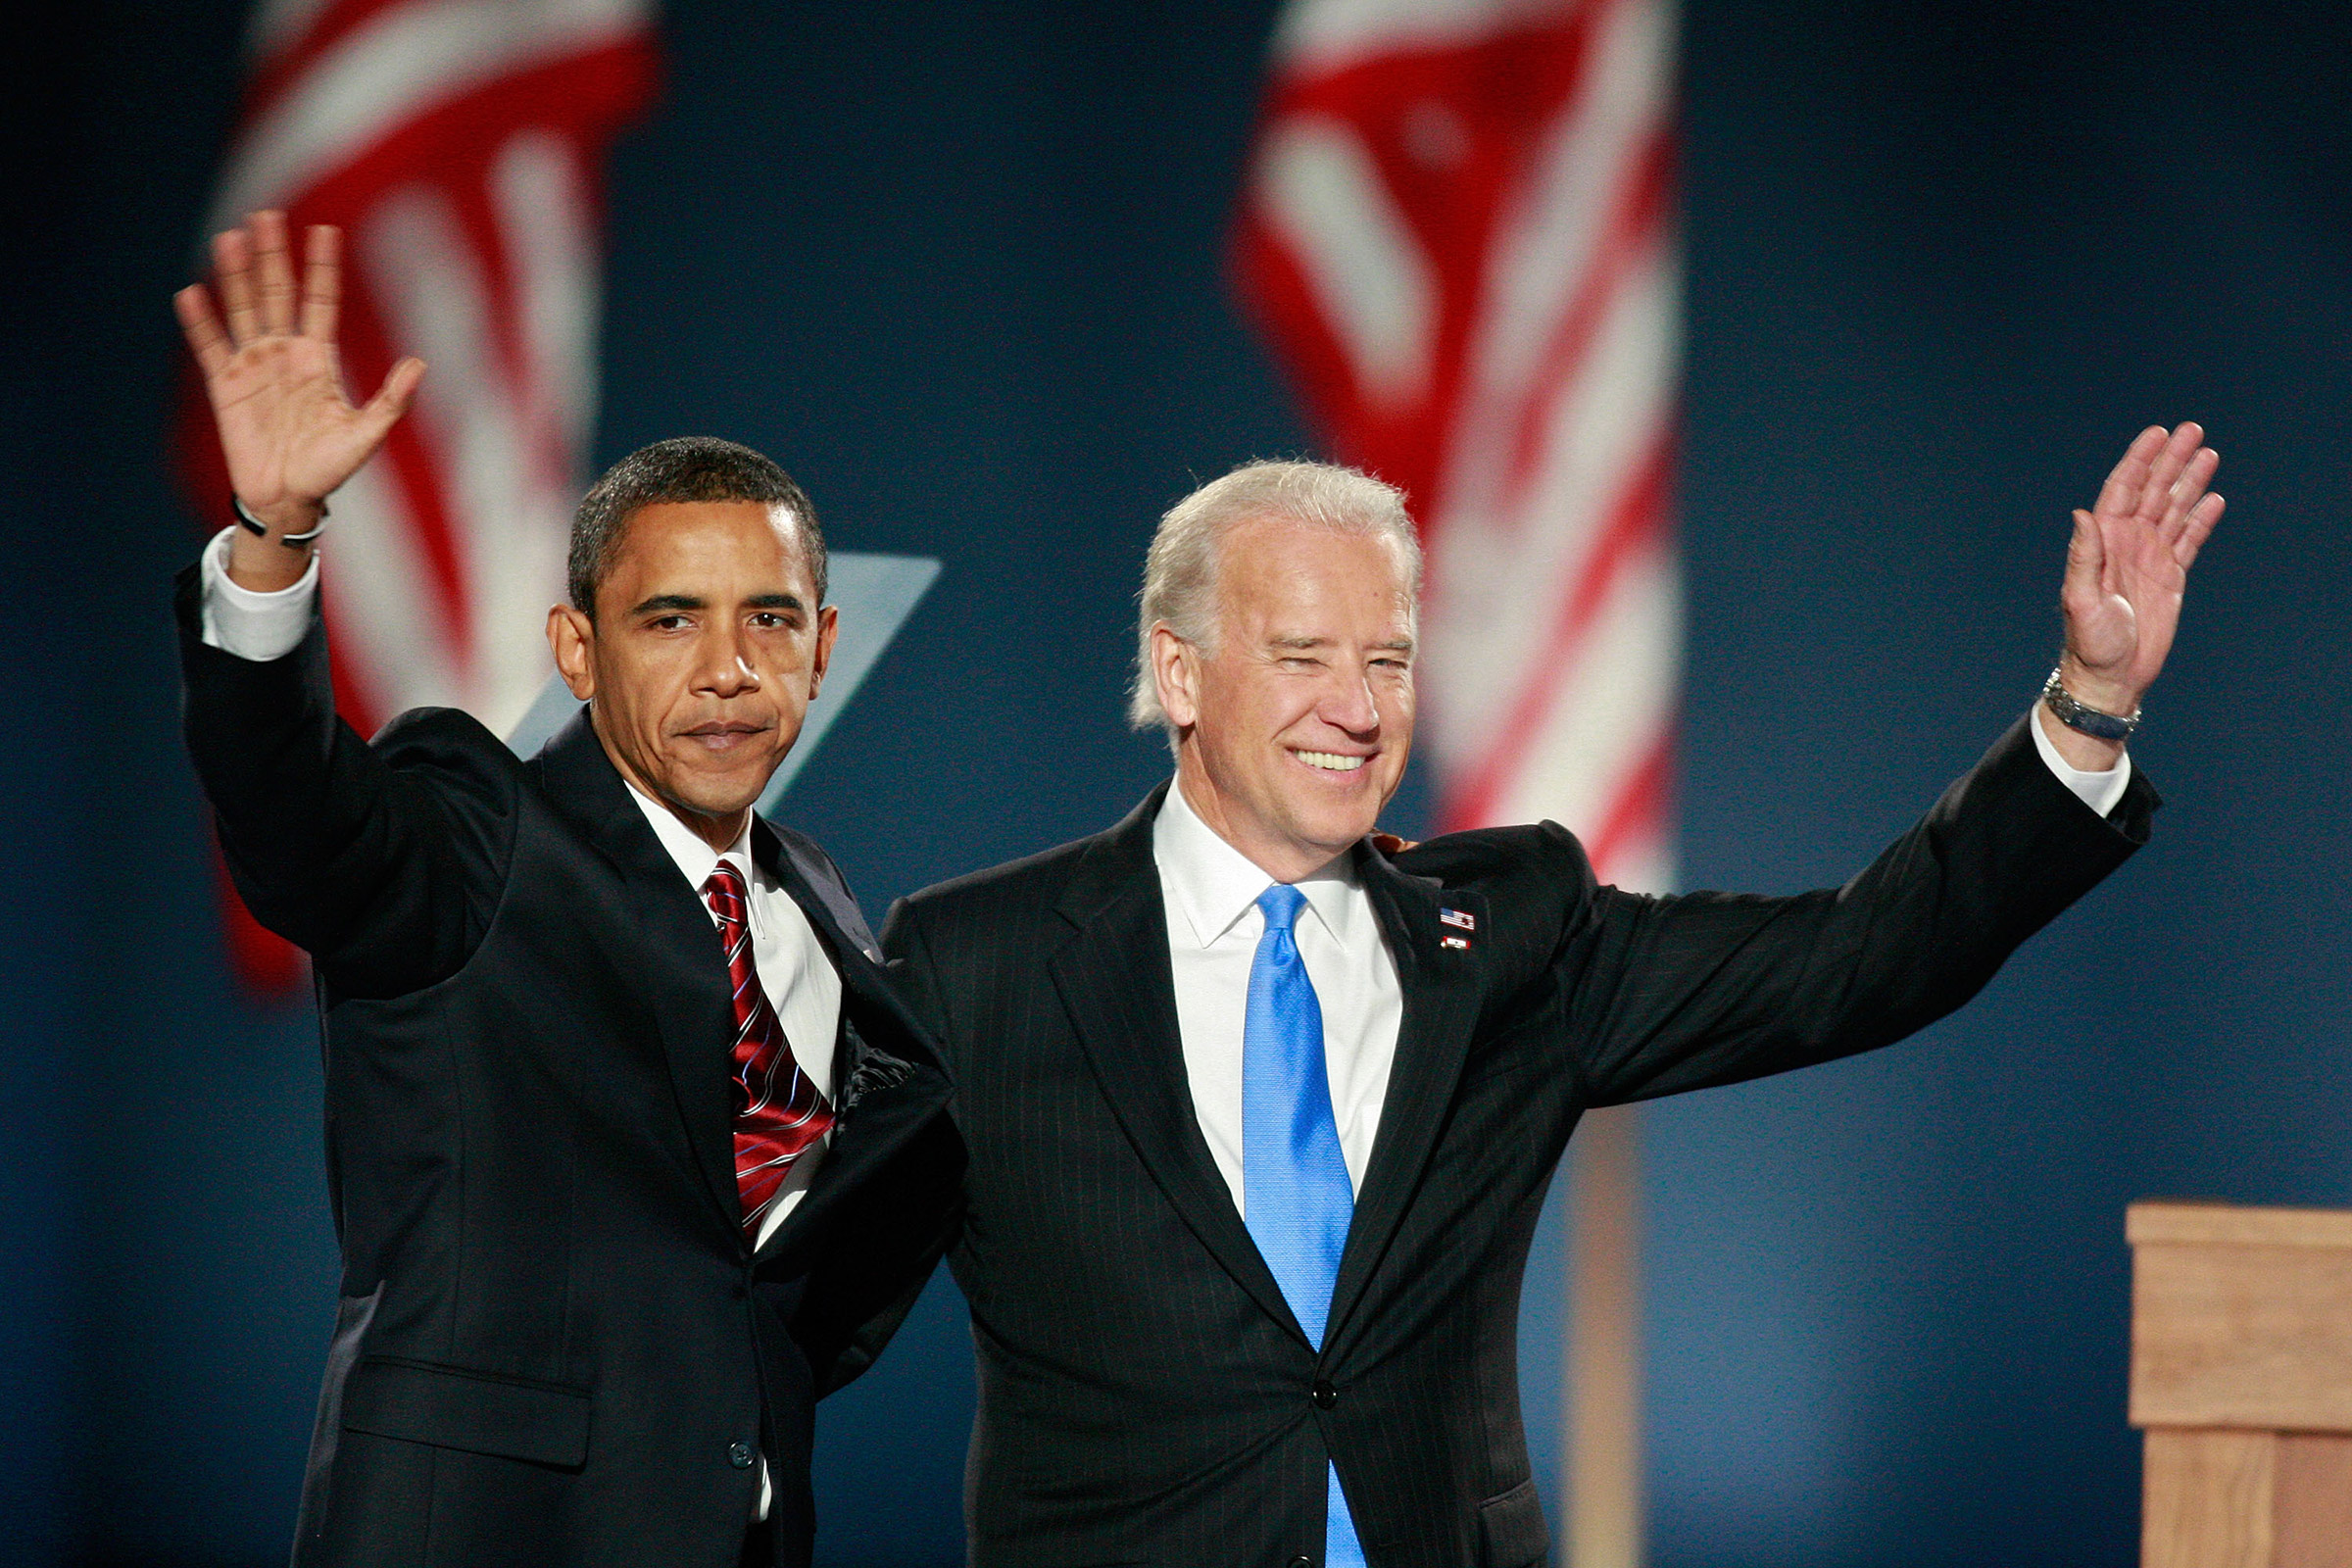 Obama taps the senior Senator to join the Democratic ticket, and the Senator is elected Vice President in 2008